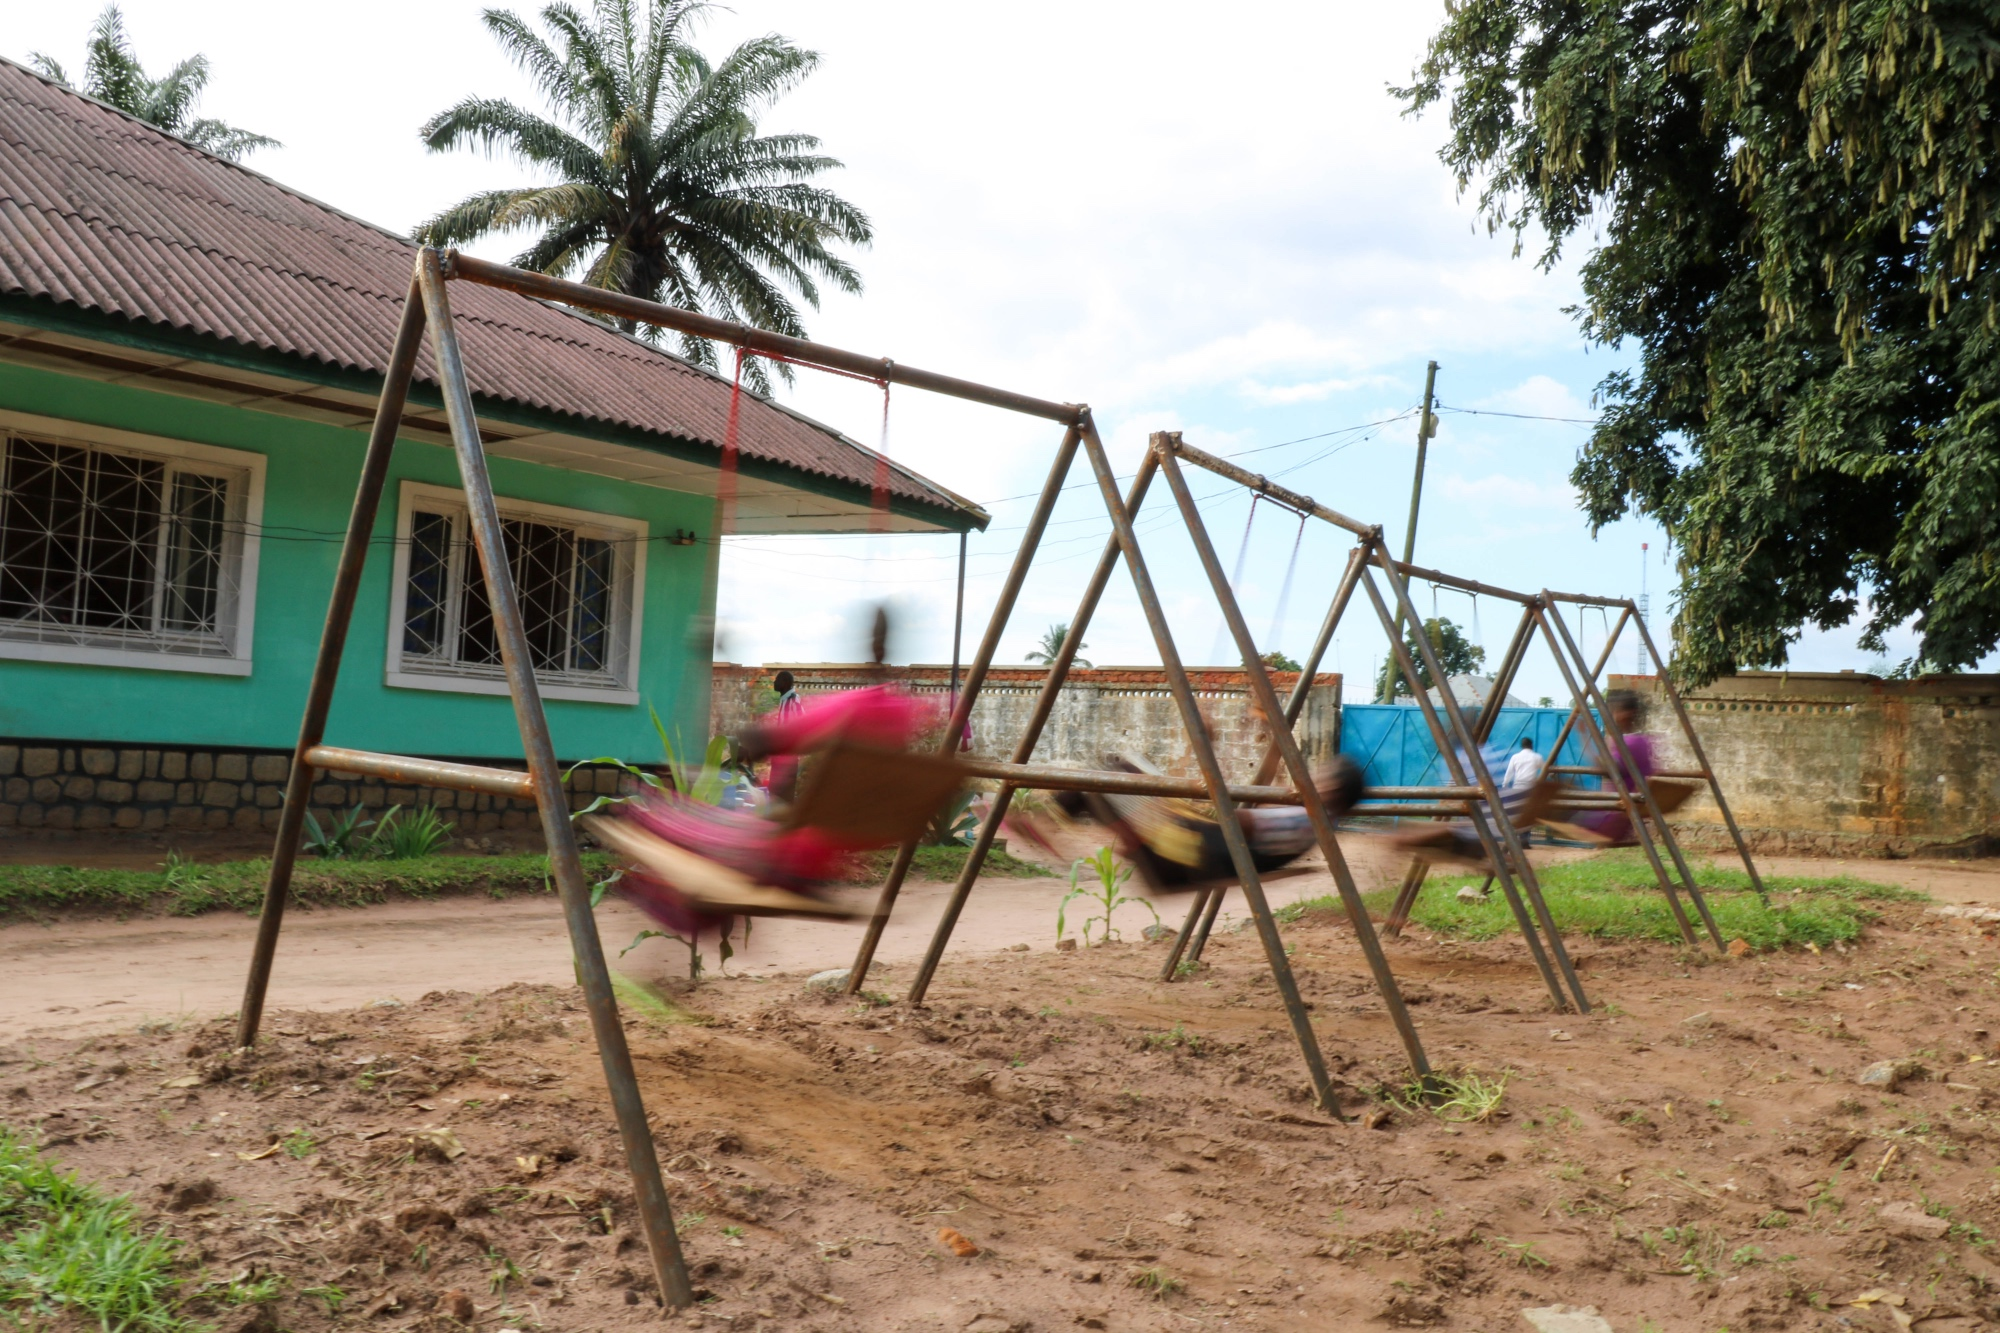 Four former militia members play on the swings at a centre for demobilised children in Kasai Central.  Forcibly recruited or eager militia member, physical or psychological injuries, all four of them are laughing and playing together.